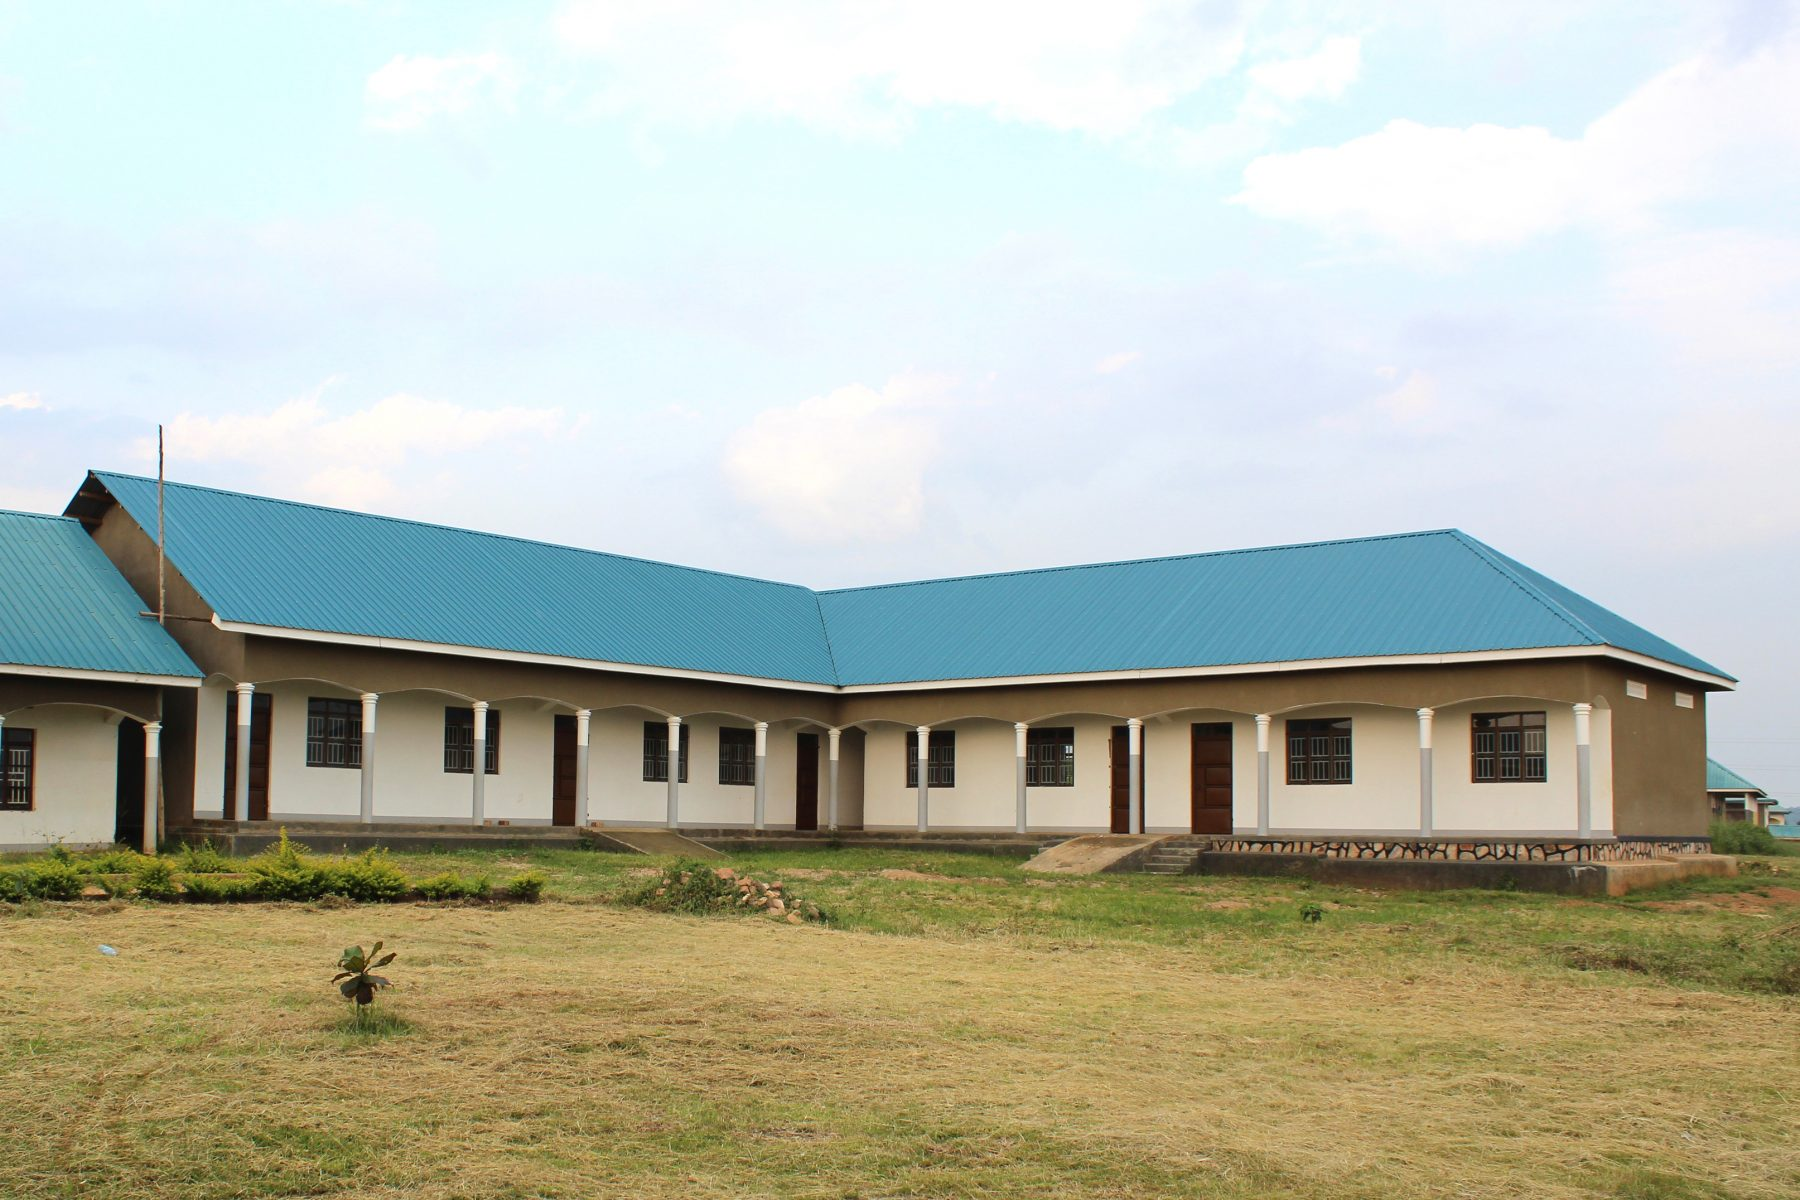 The five-room addtion to Eagles Wings Children's Village High School has been completed.